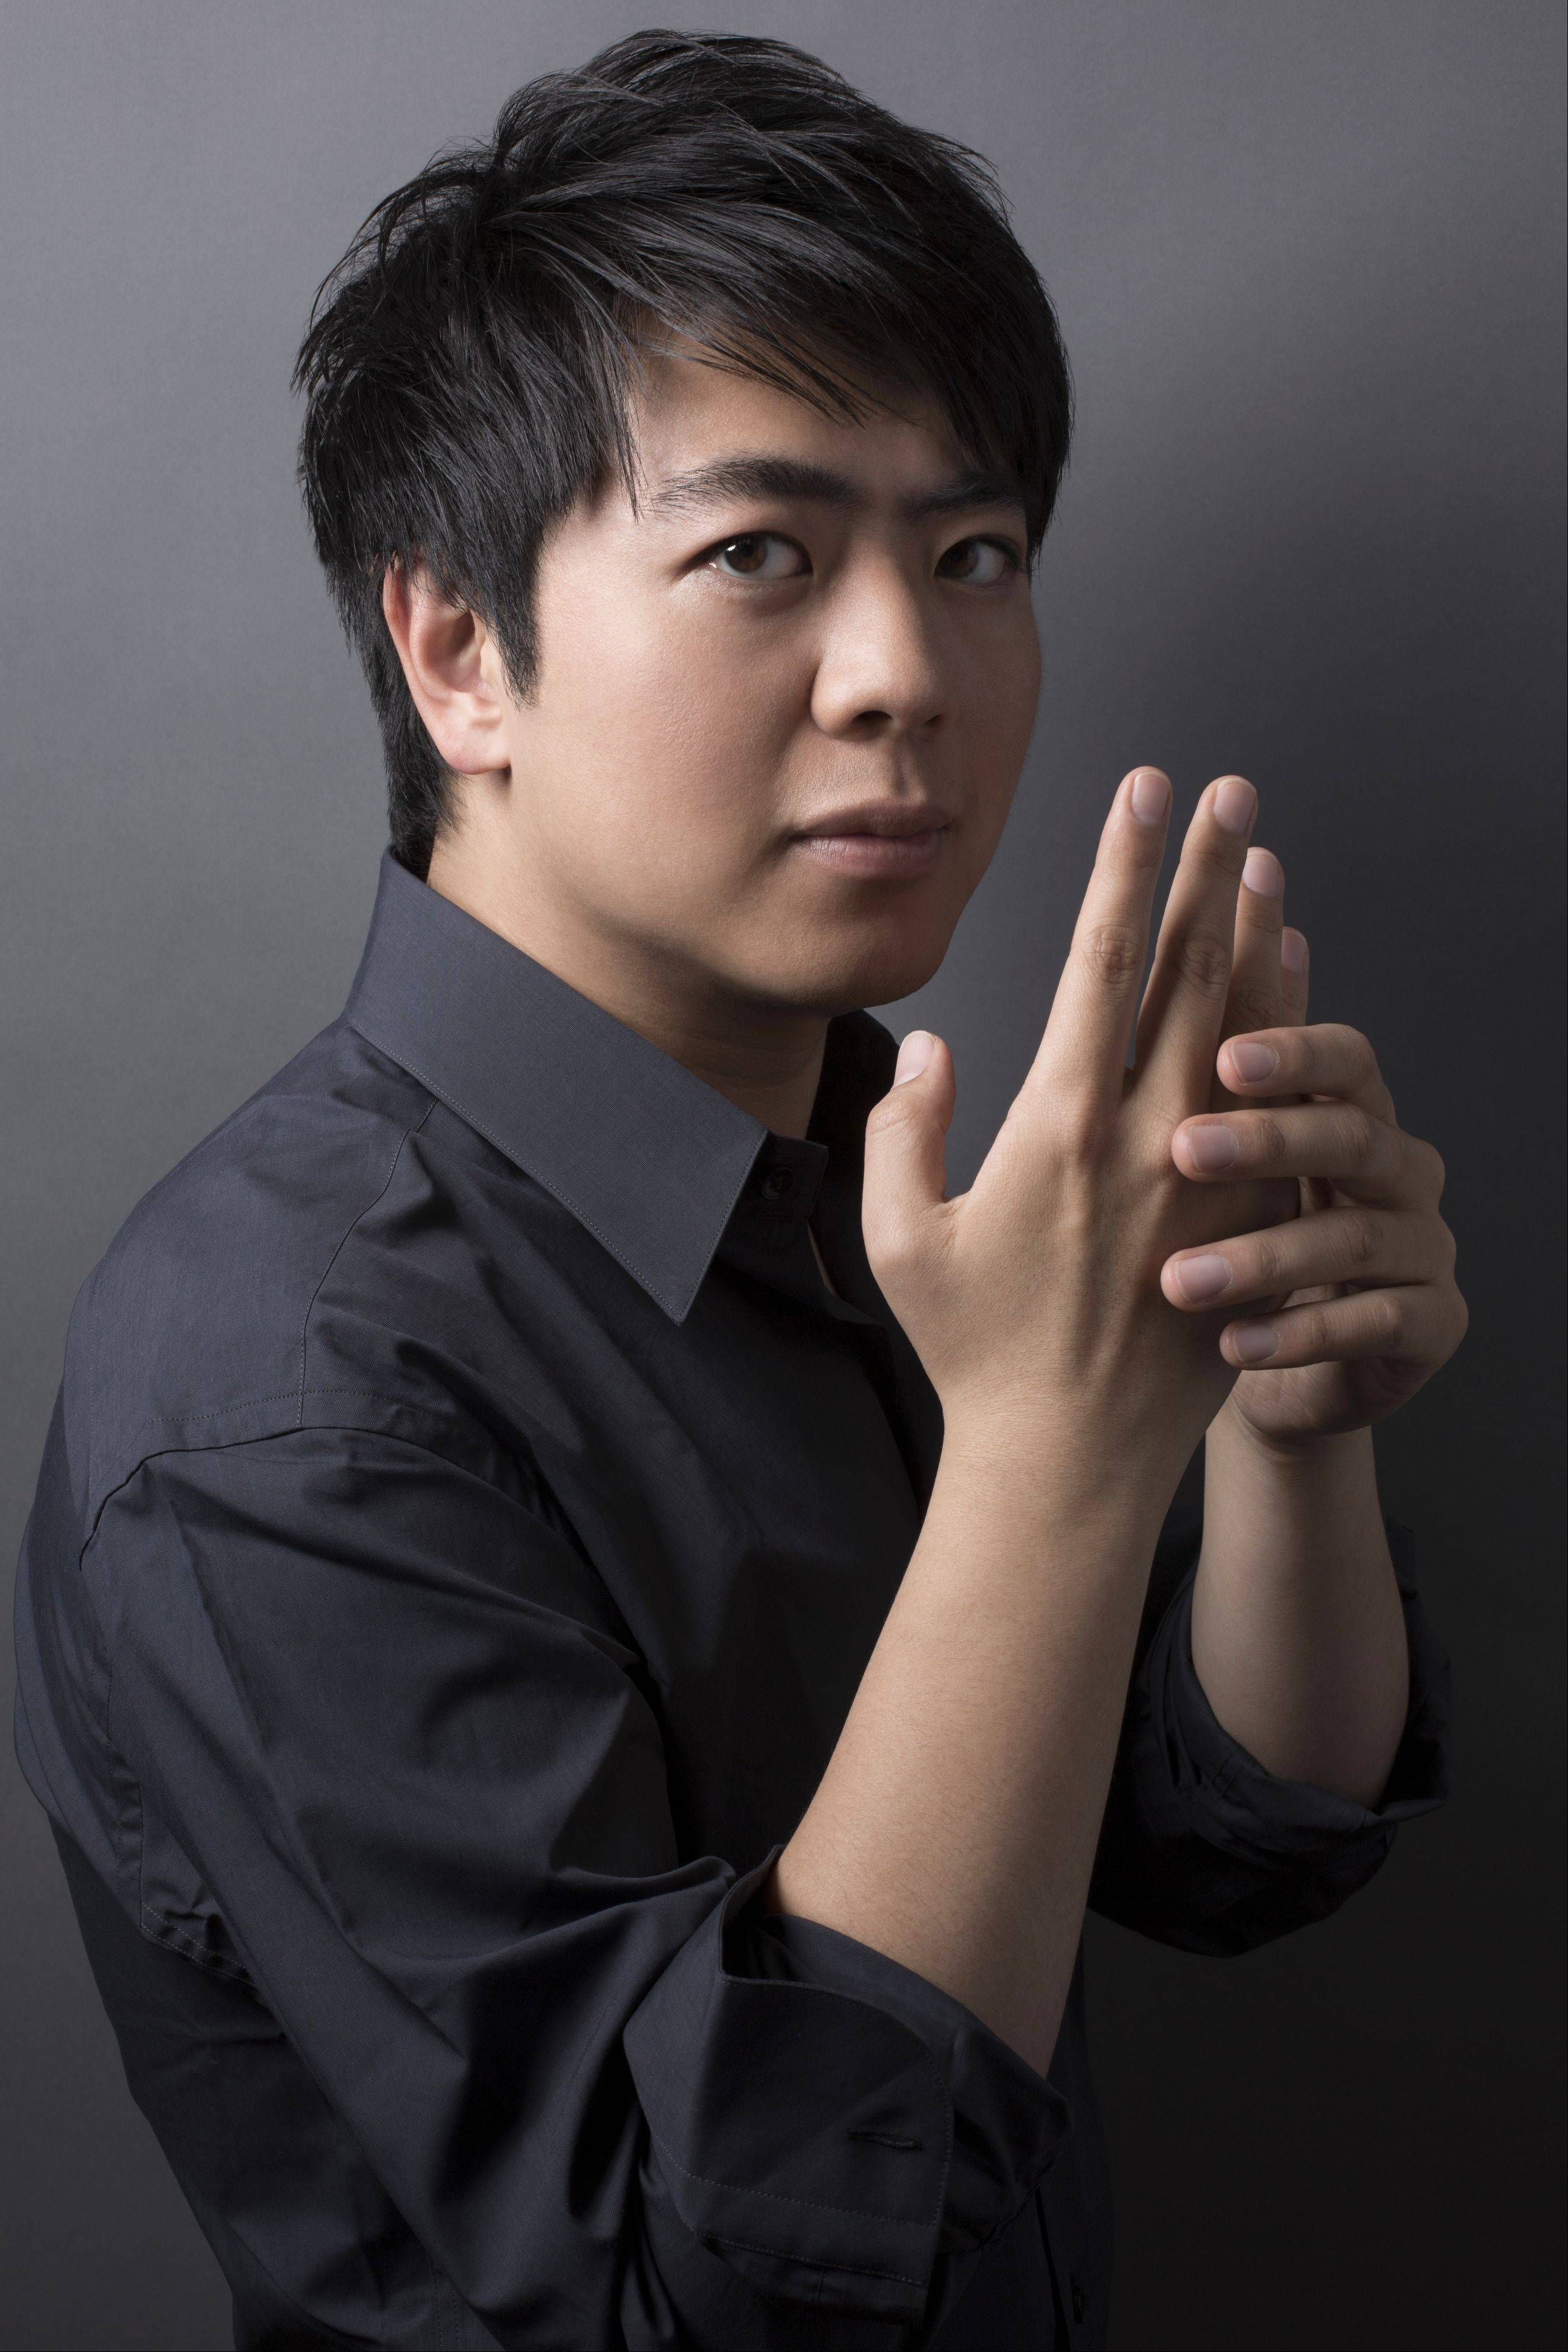 Chinese pianist Lang Lang returns to the Ravinia Festival in Highland Park to perform with the Chicago Symphony Orchestra.